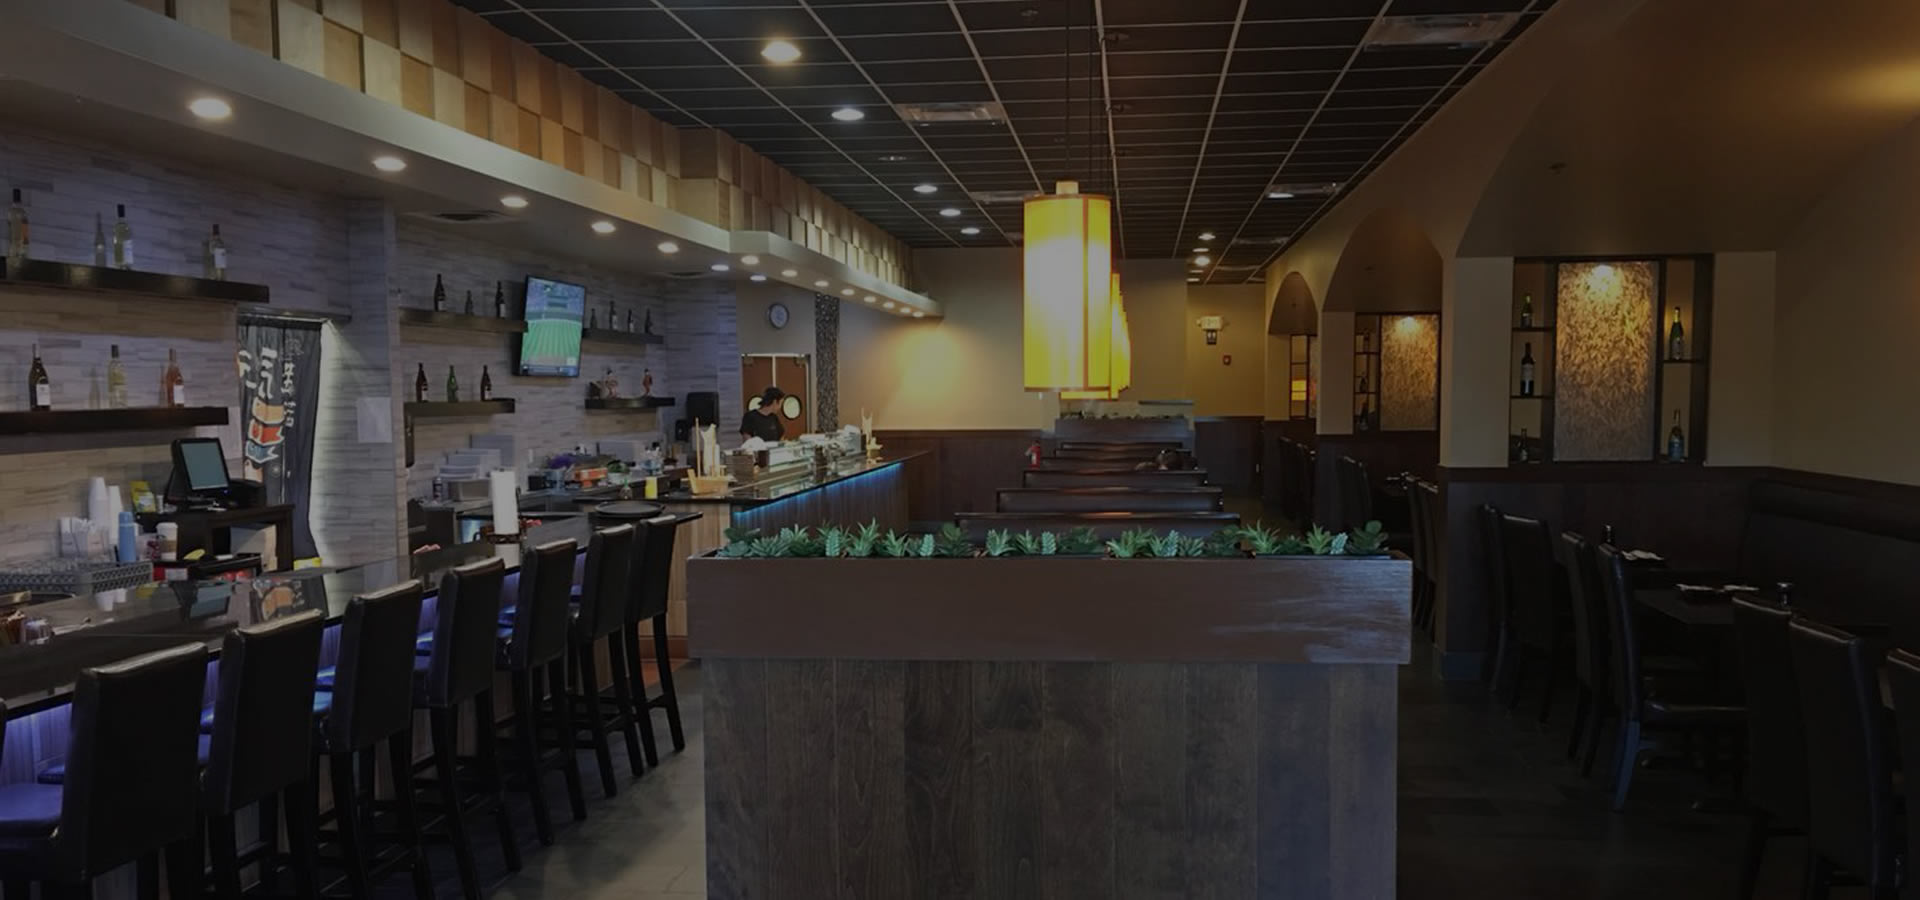 Kumo Sushi Japanese Restaurant Rochester Mn 55902 Menu Online Order Take Out Online Coupon Discount Menu Customer Review